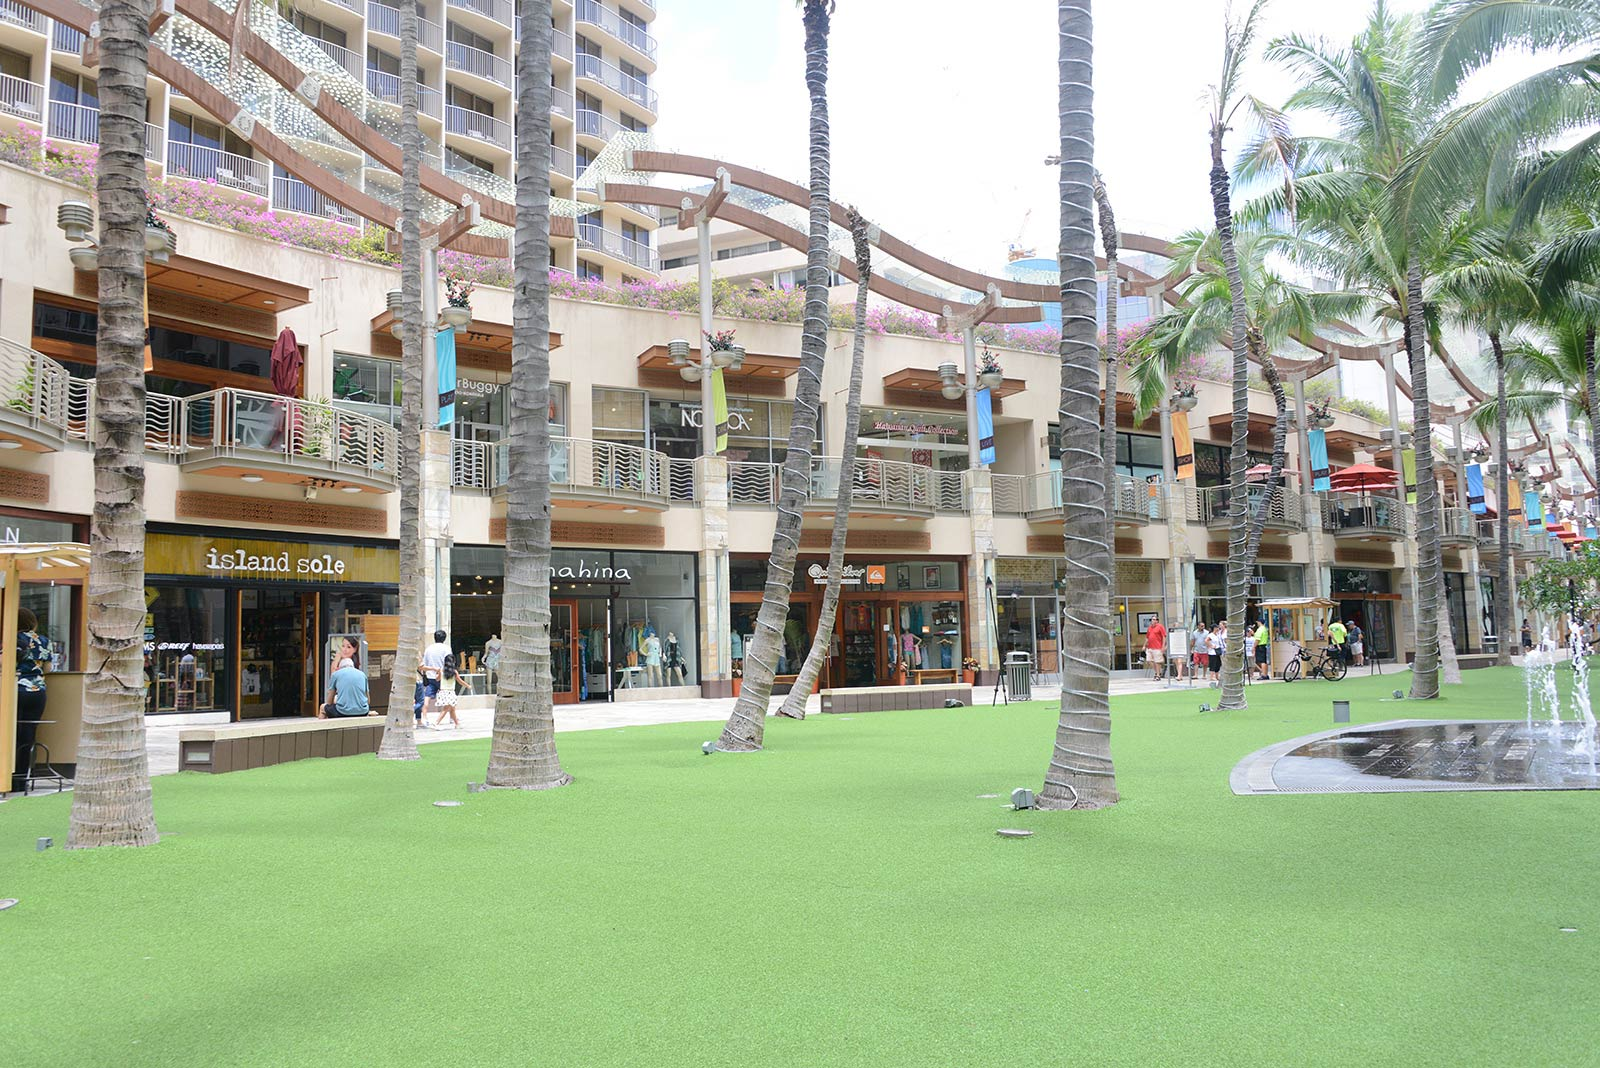 The Imperial Waikiki Vacation Club timeshare resales